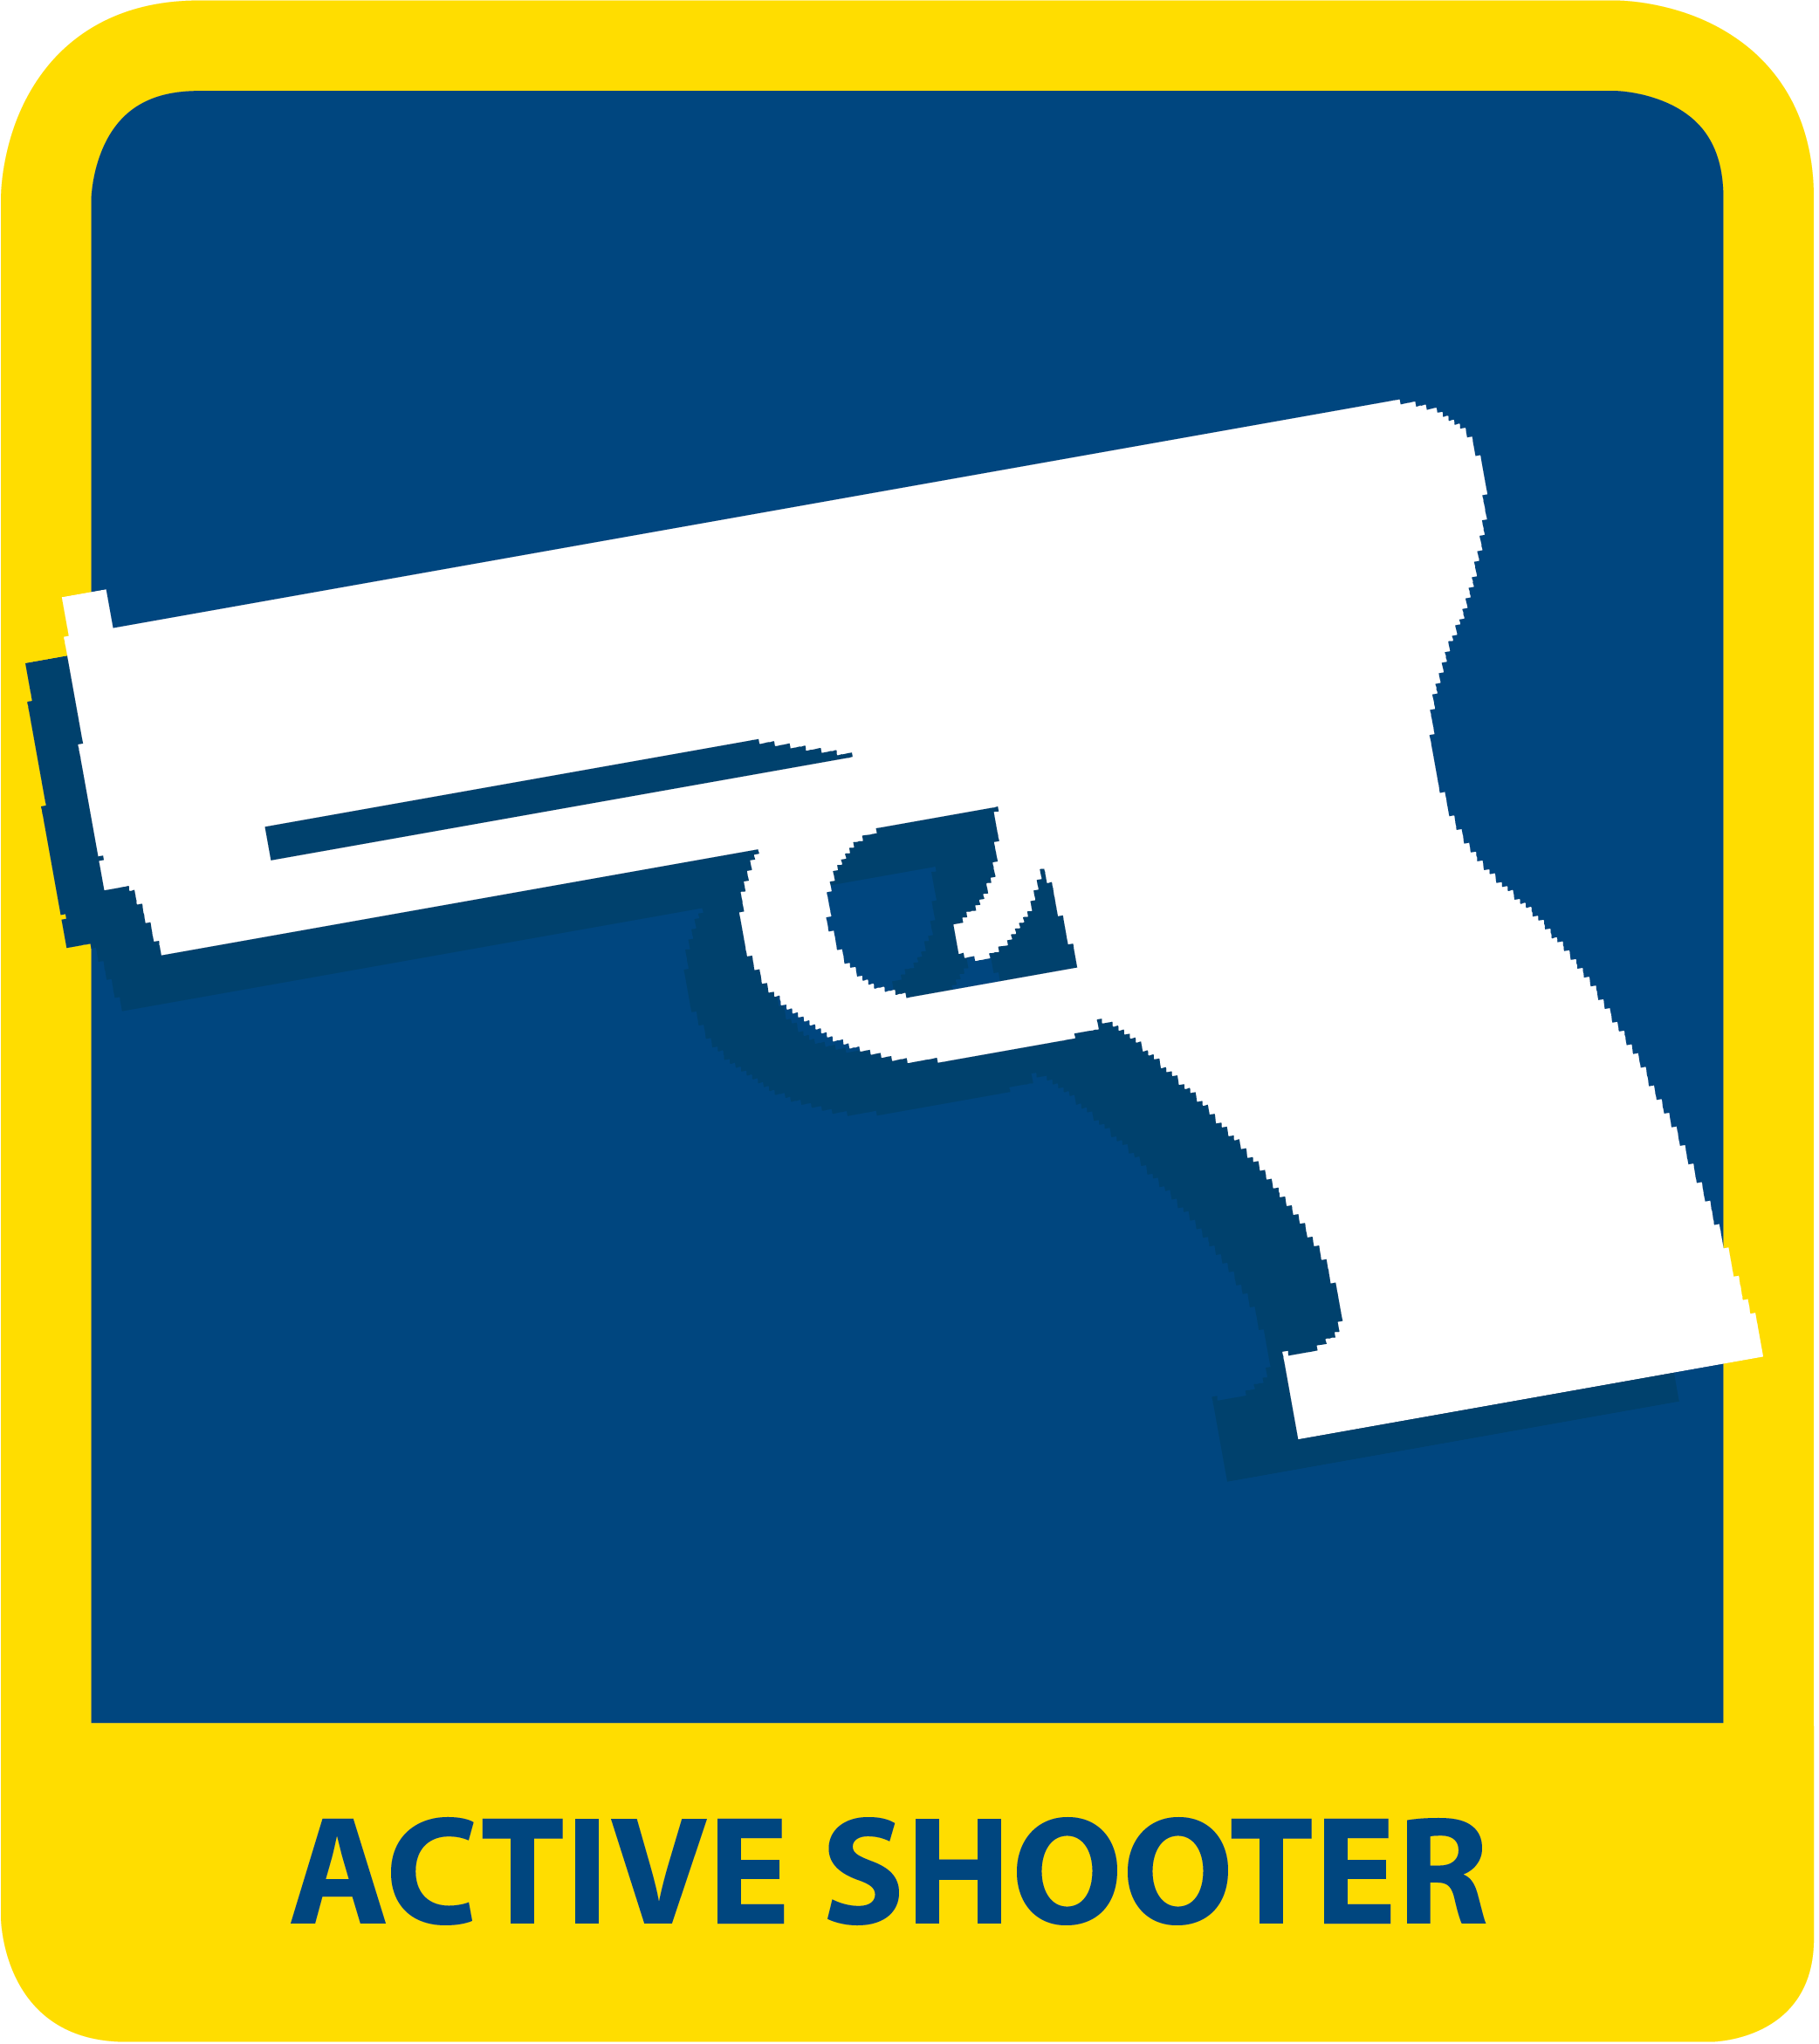 icon reads ACTIVE SHOOTER